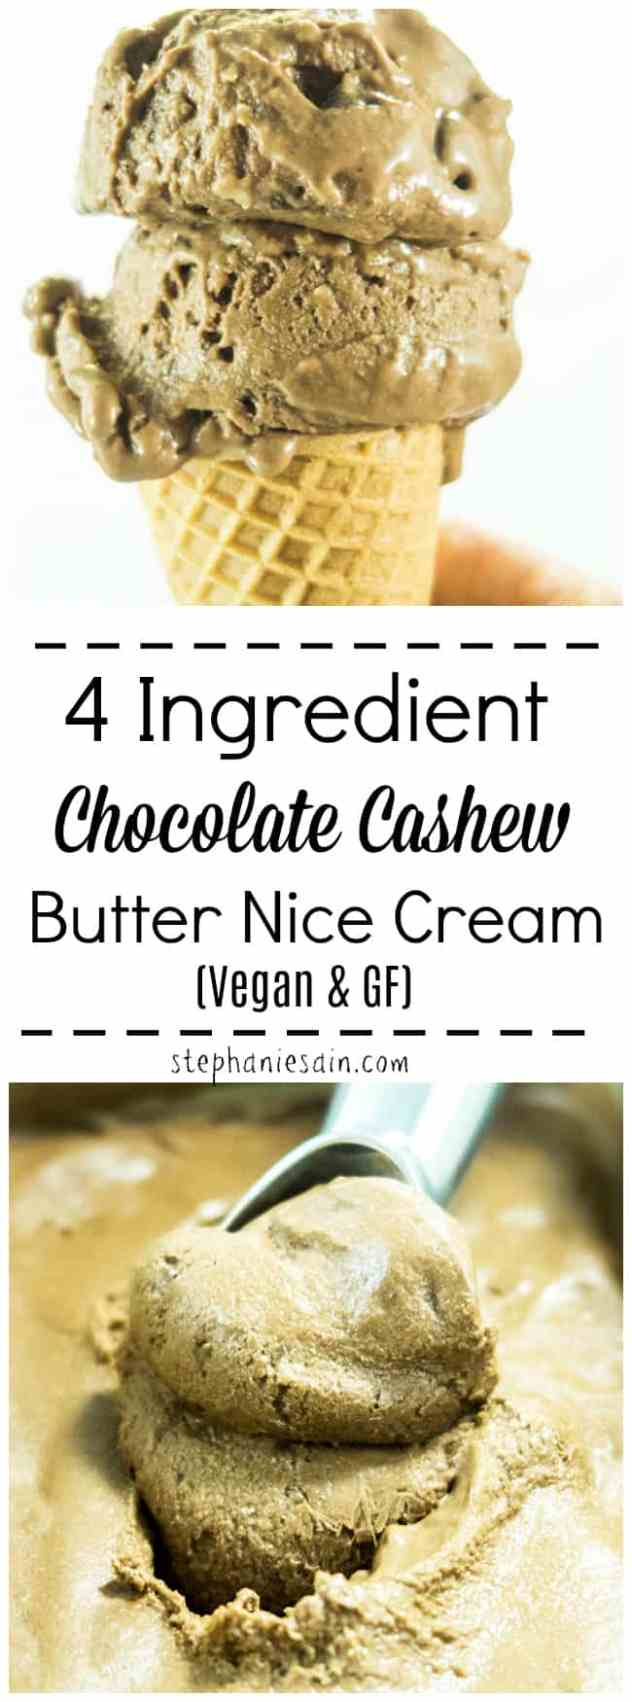 This Chocolate Cashew Butter Nice Cream requires only 4 ingredients for a thick, creamy chocolatey treat. Healthy and guilt free treat great for hot summer days. Can be customized with favorite toppings. Vegan & Gluten Free.